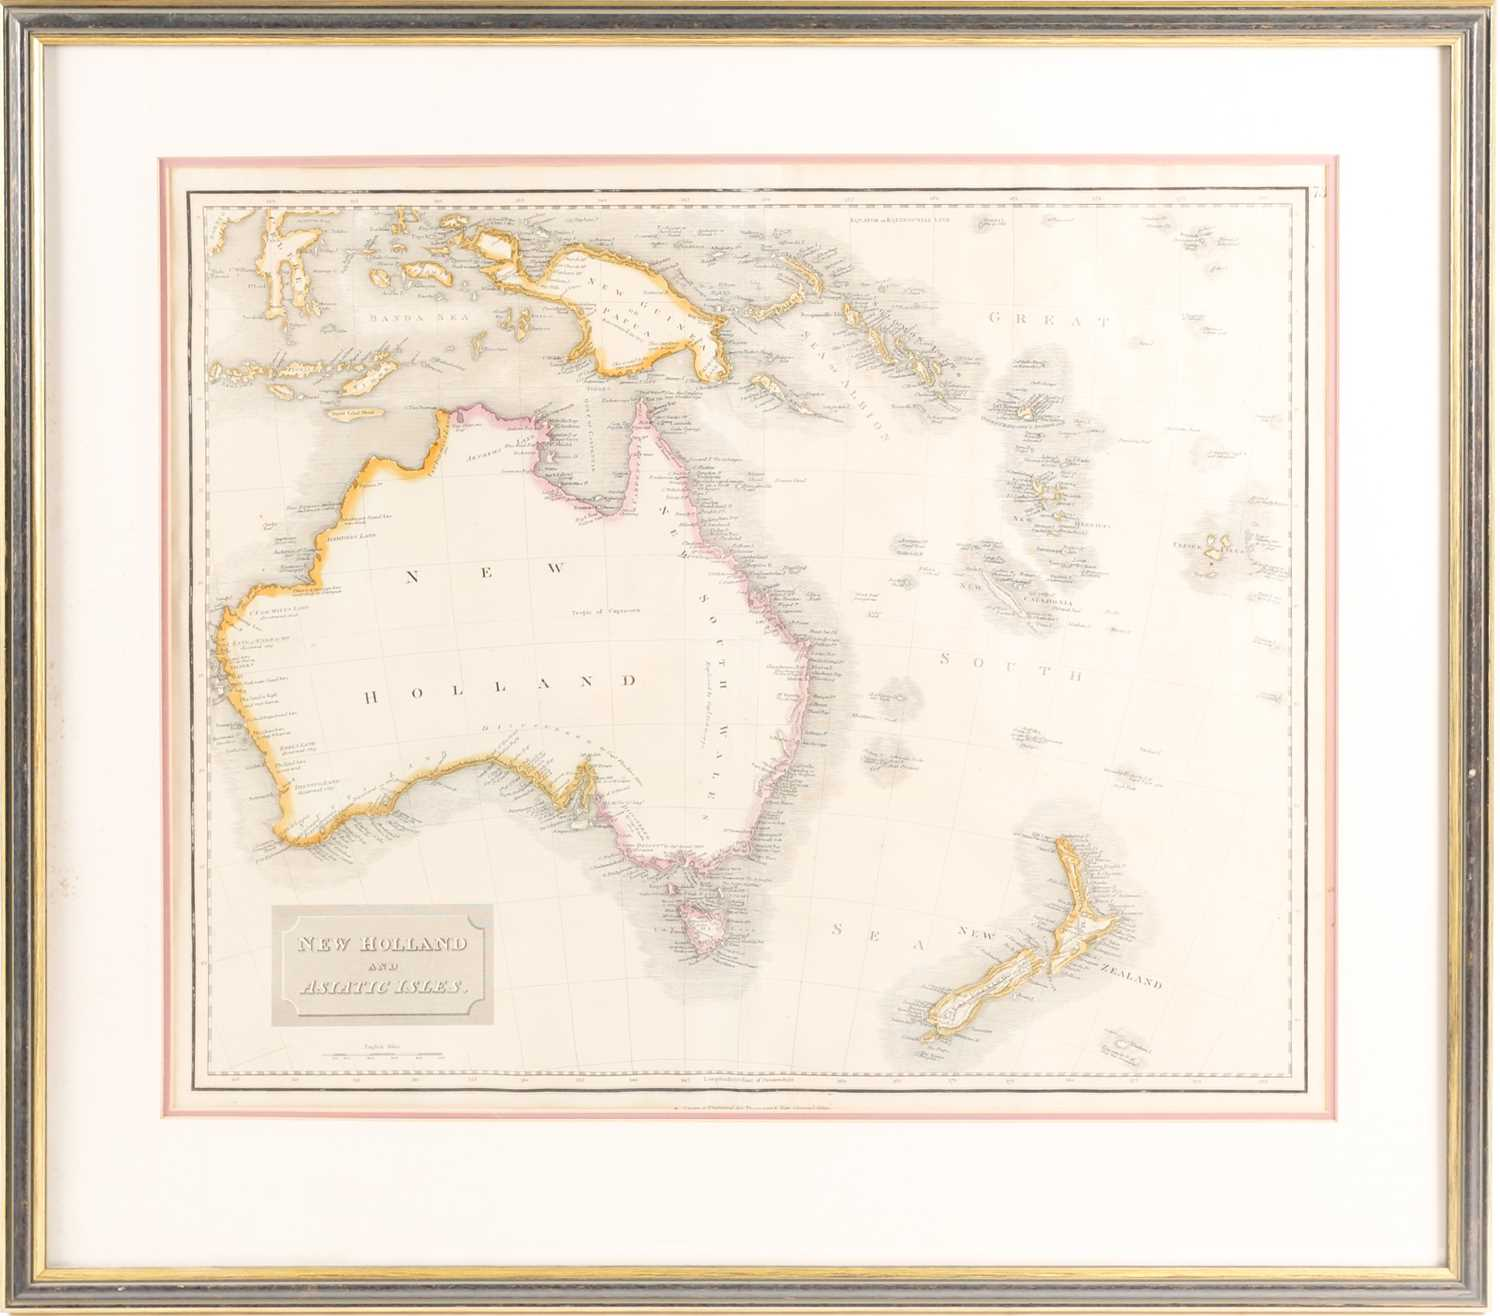 Drawn and engraved for Thomson's New General Atlas, New Holland and Asiatic Isles, engraved map,